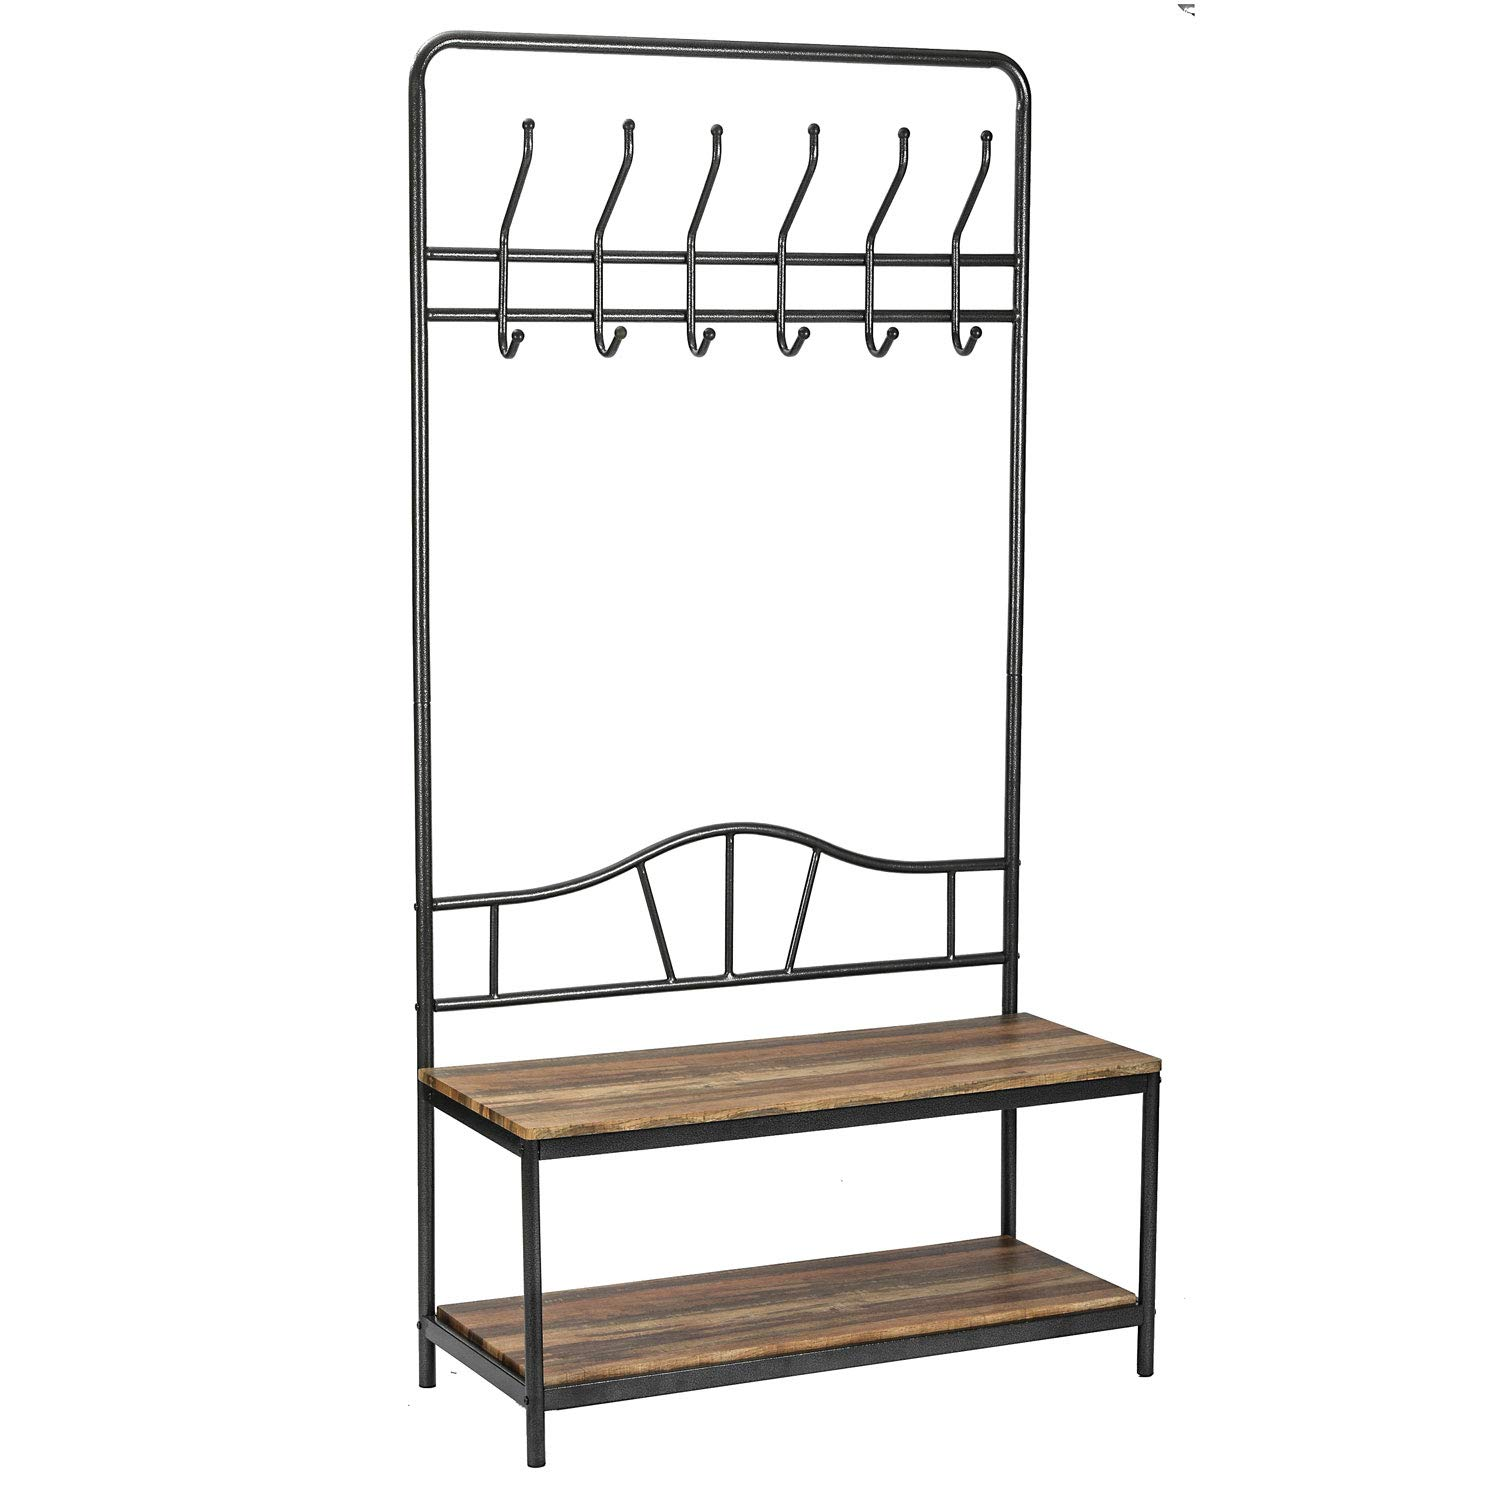 IRONCK Industrial Coat Rack, Hall Tree with 2-Tier Shoe Storage, Rack Hanger with 12 Hooks